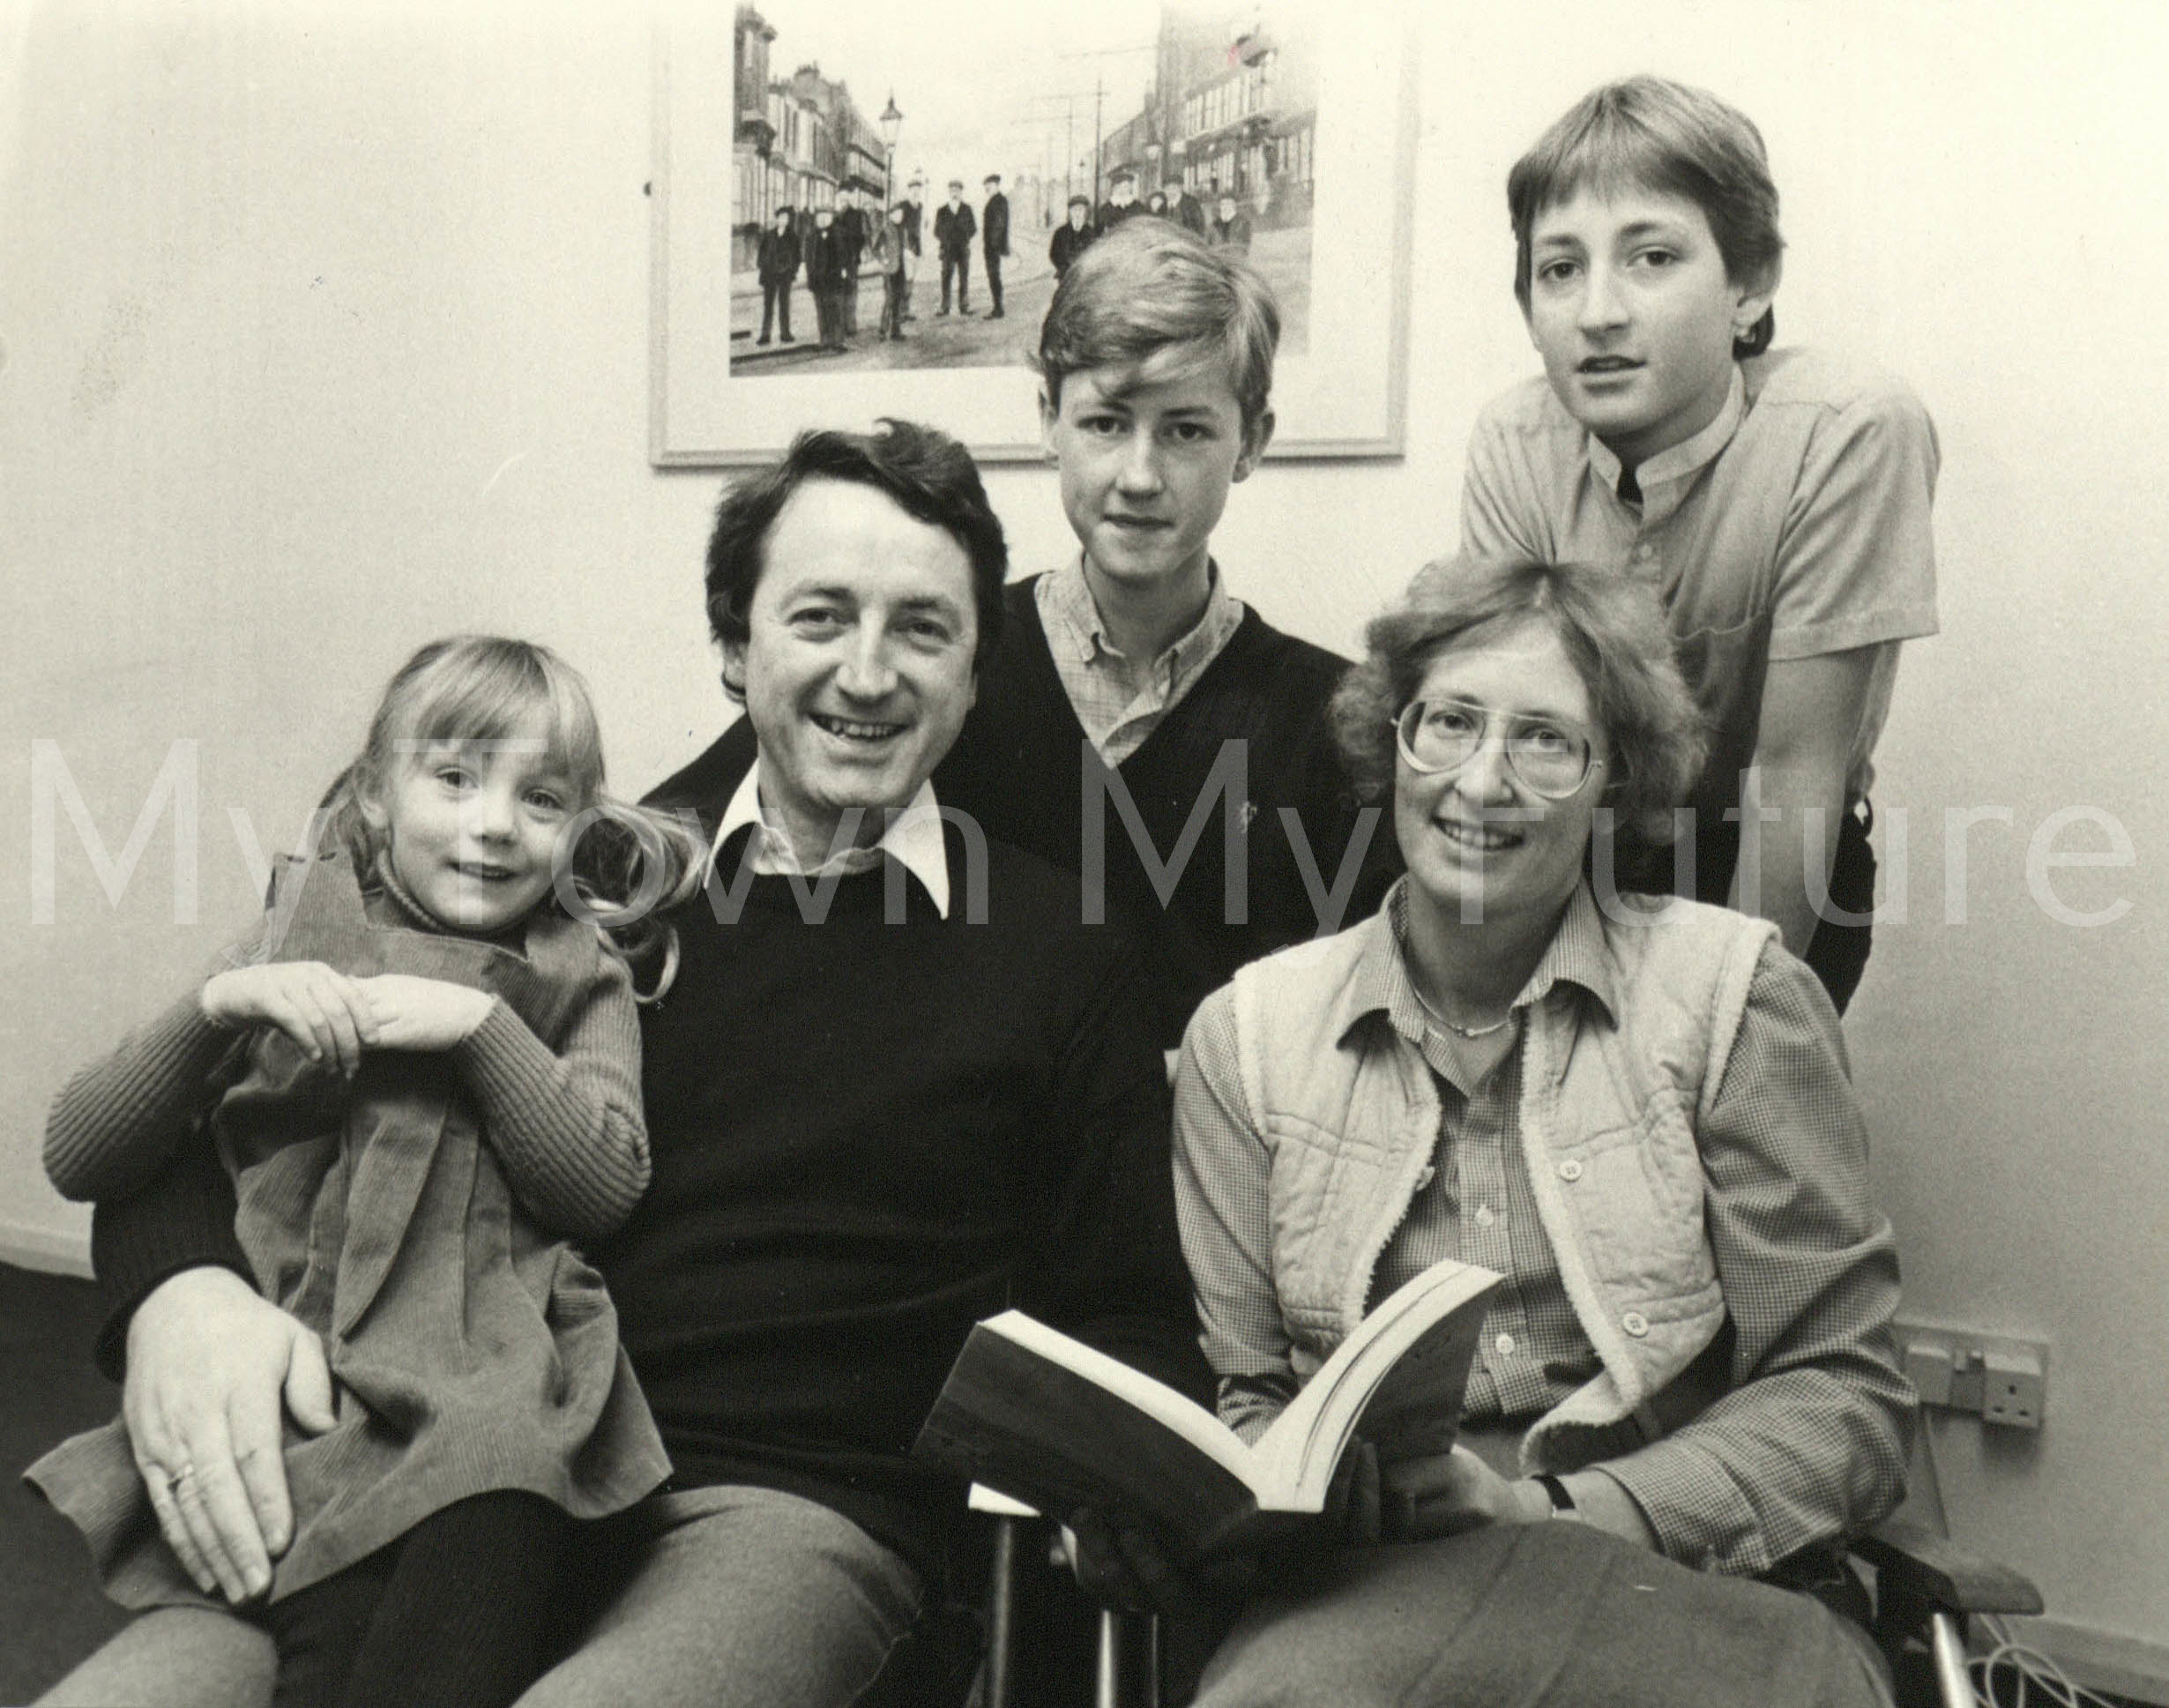 Ian Wrigglesworth M.P. and Family, 7th January 1984 - The Times